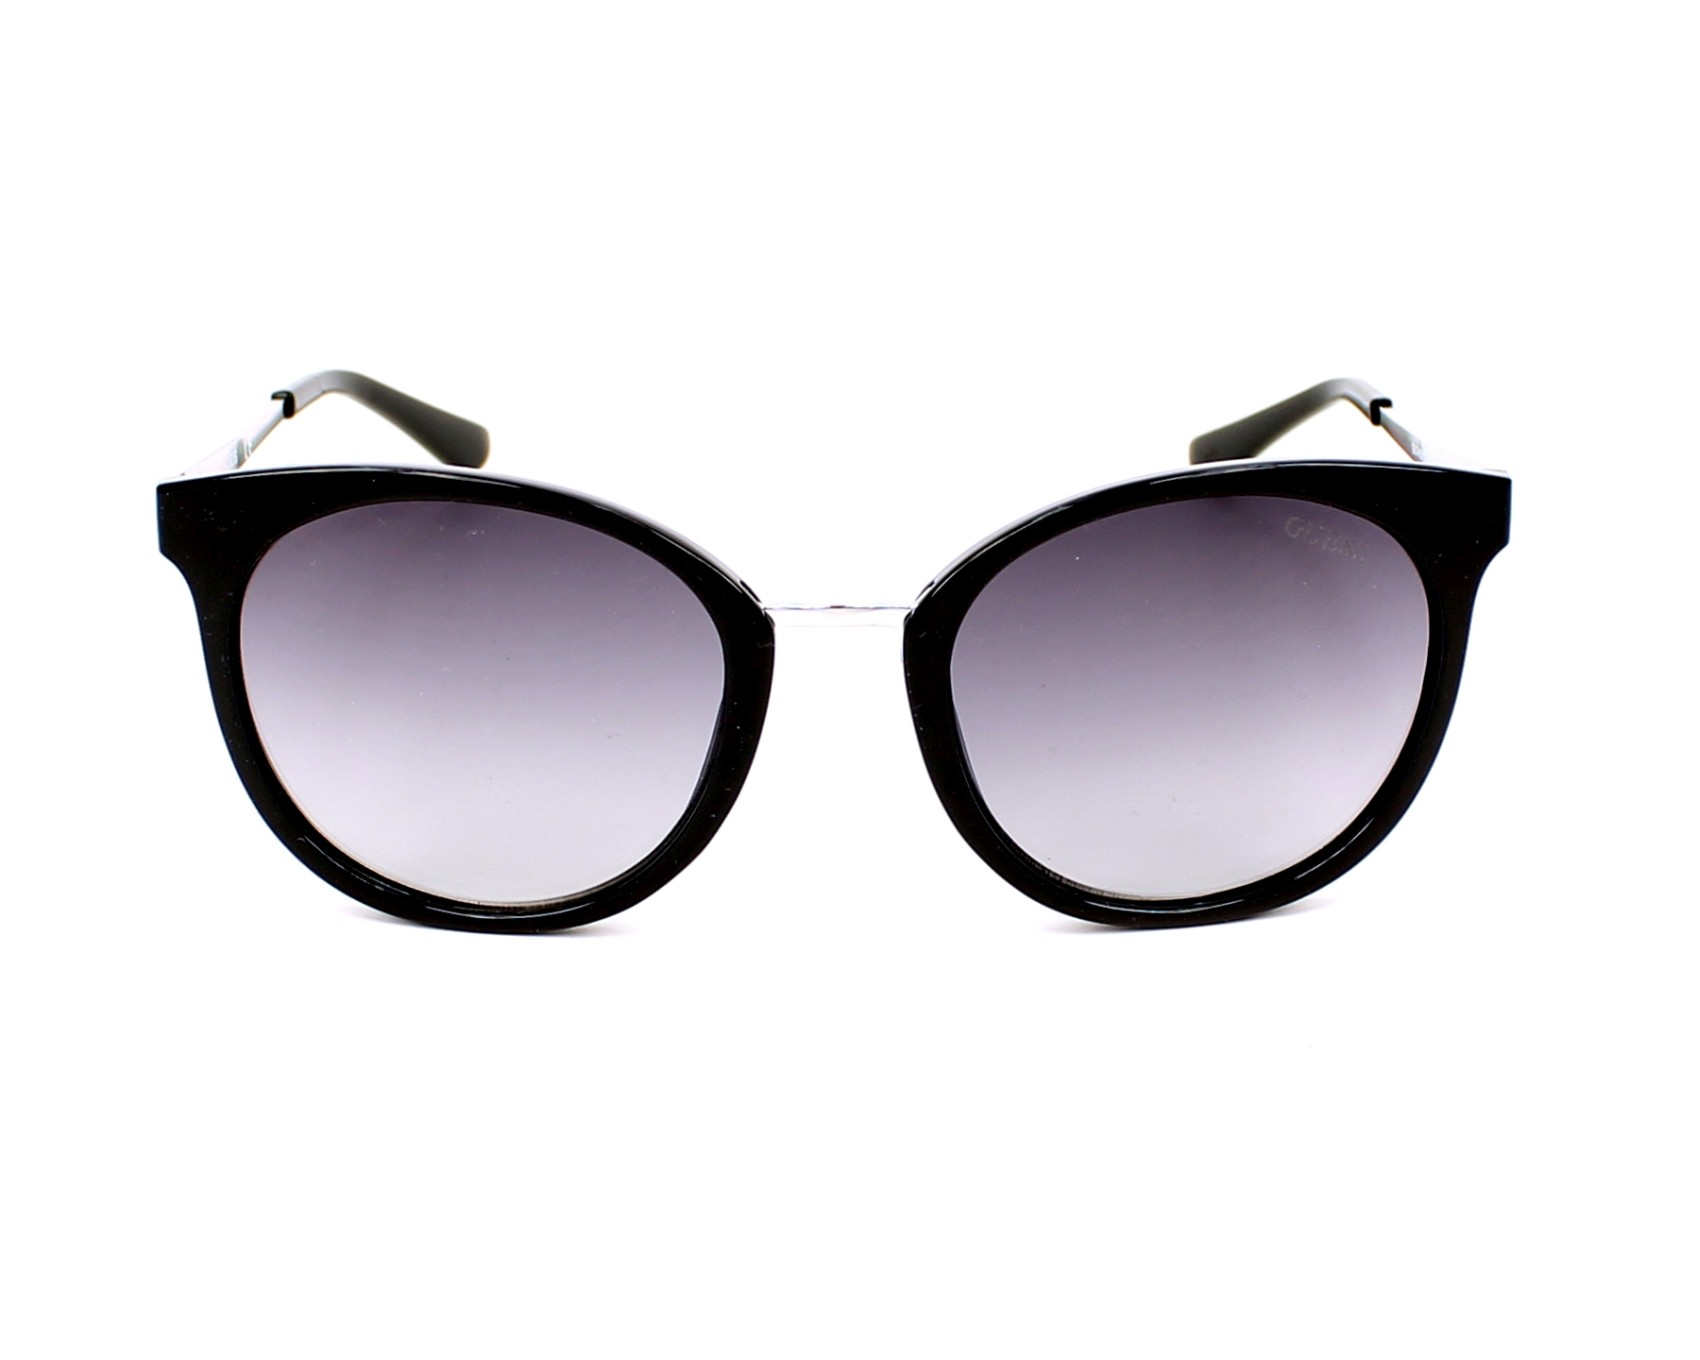 3ee99576157 Sunglasses Guess GU-7459 01B 52-20 Black Silver front view